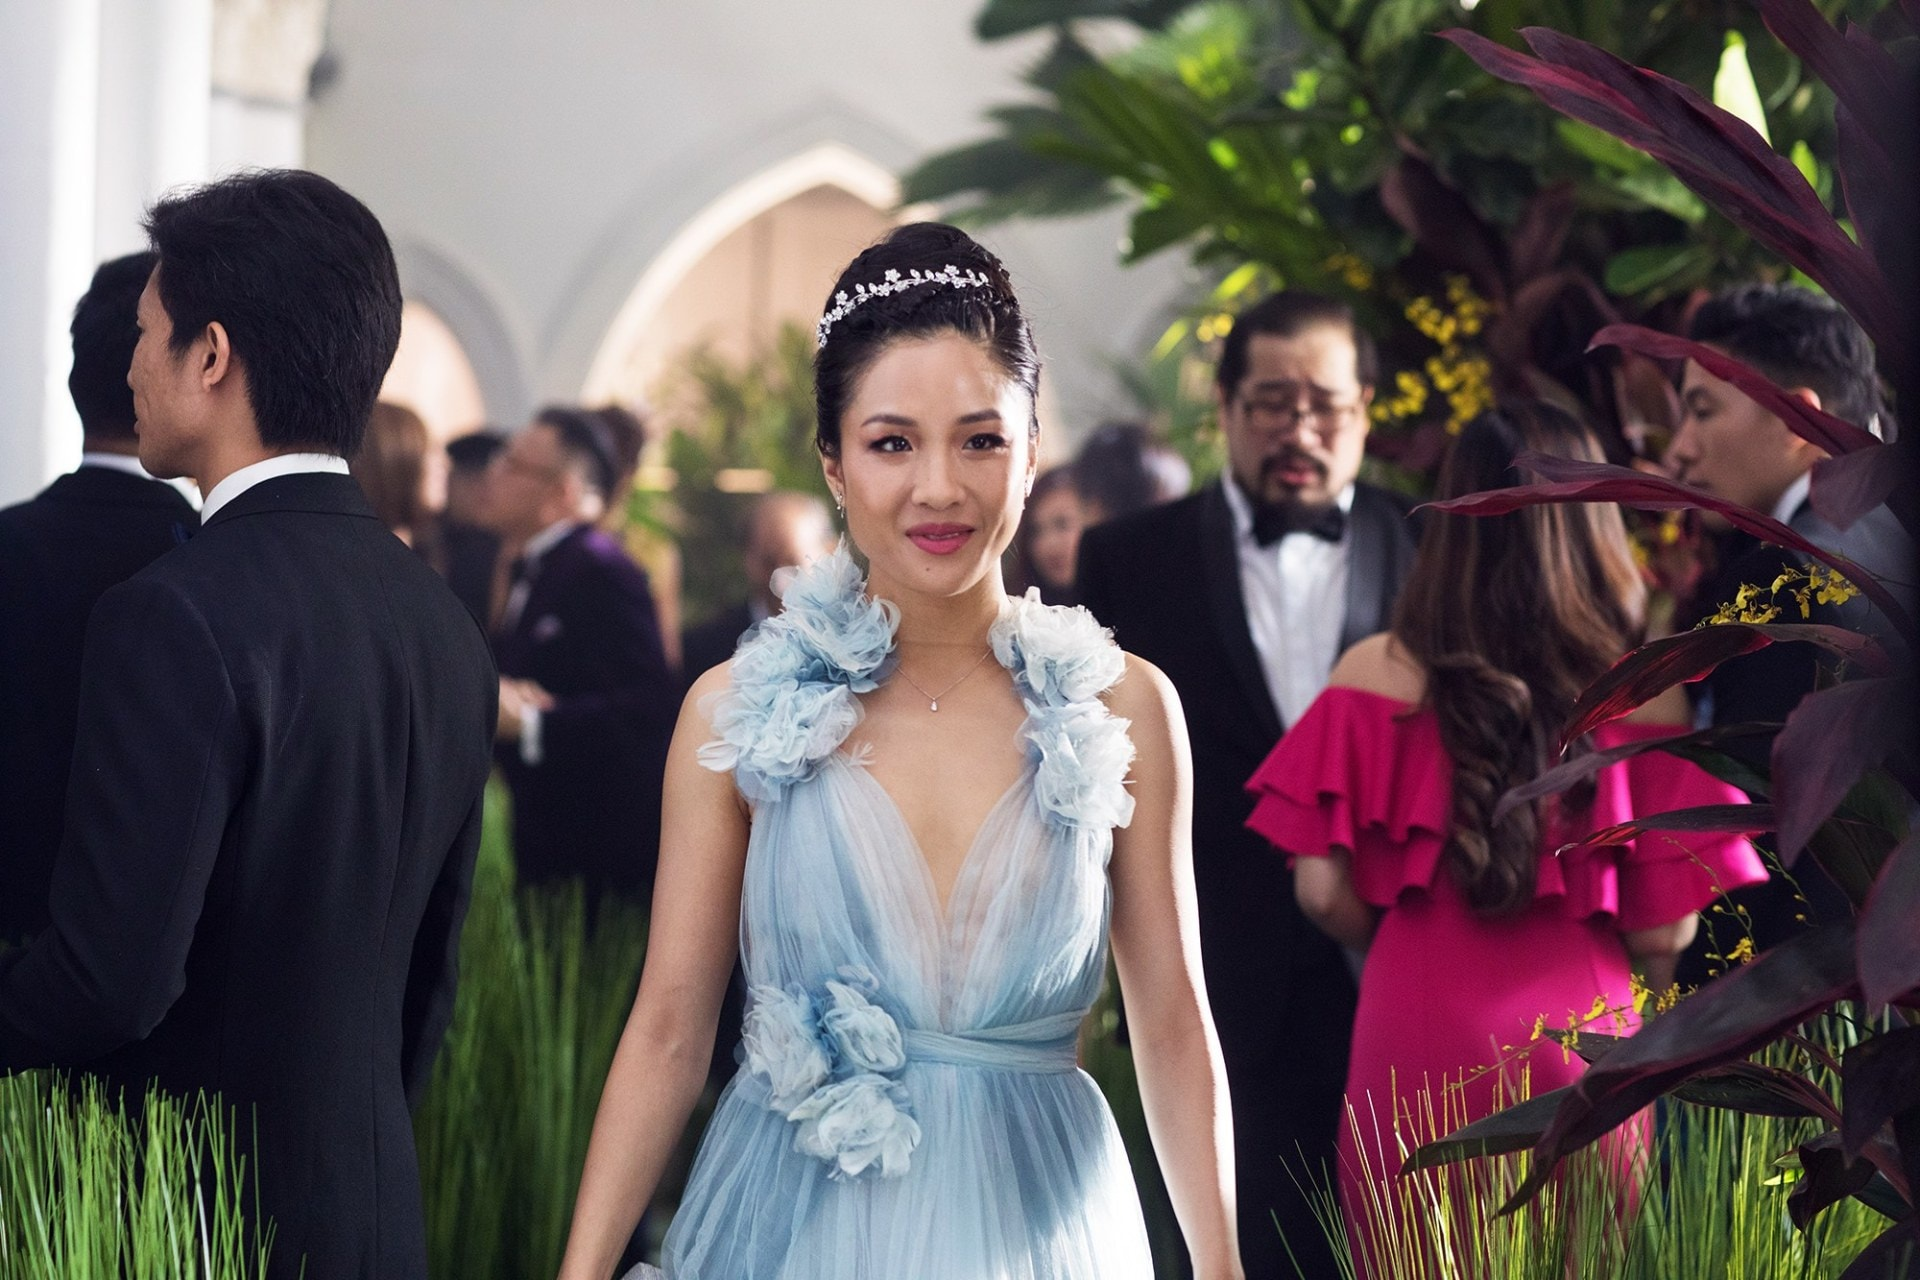 Loved Crazy Rich Asians? Here's how to experience Singapore like in the movie